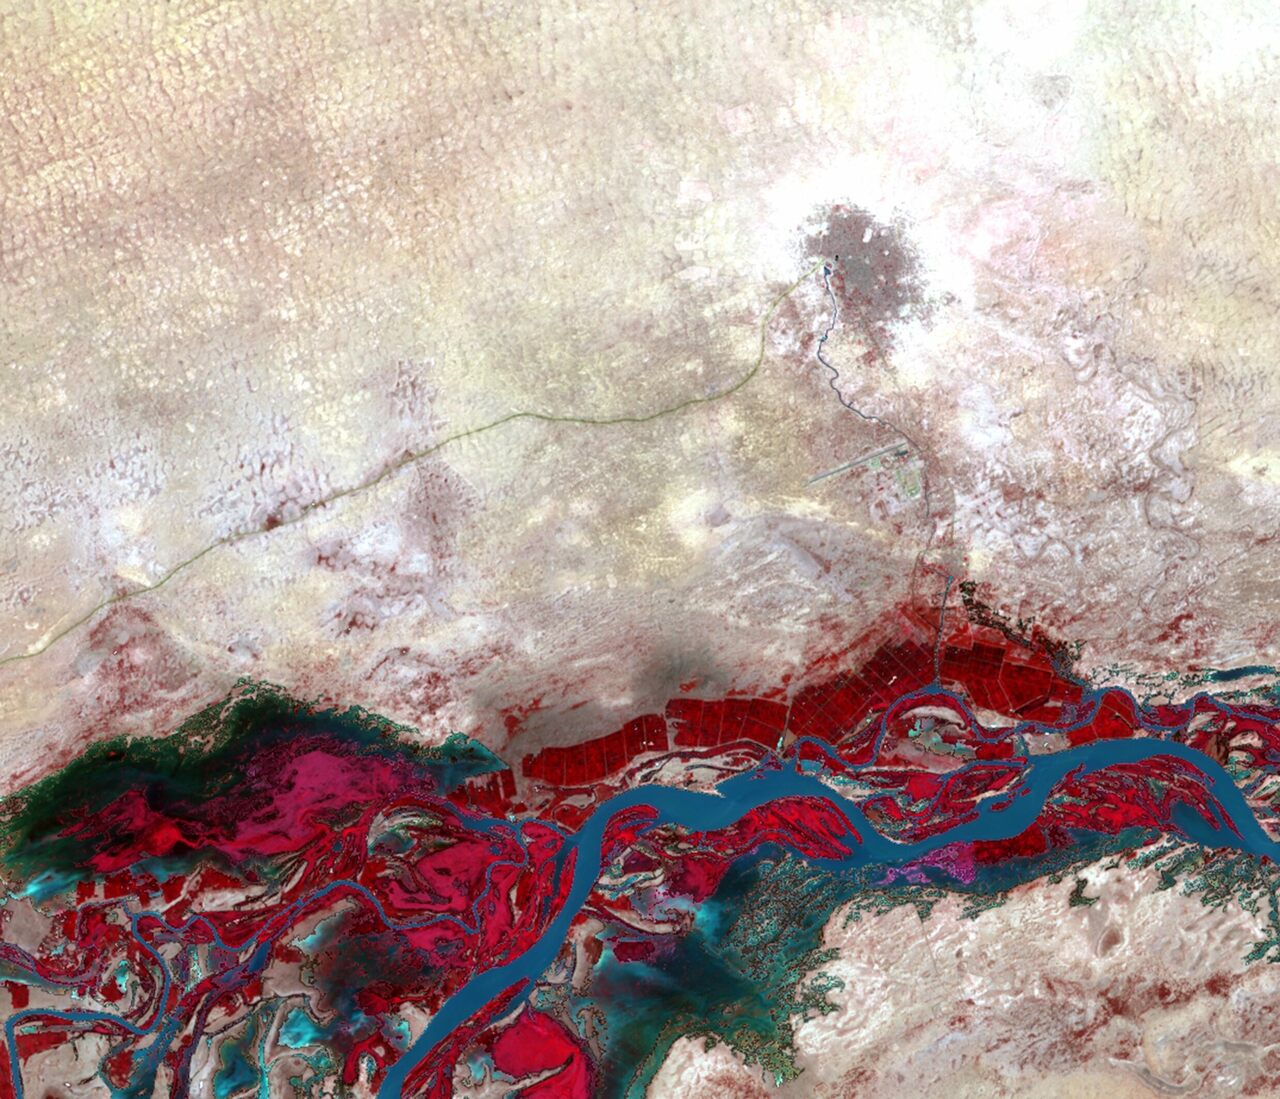 The riparian buffers flanking the Niger River in Timbuktu, Mali, appear in red.